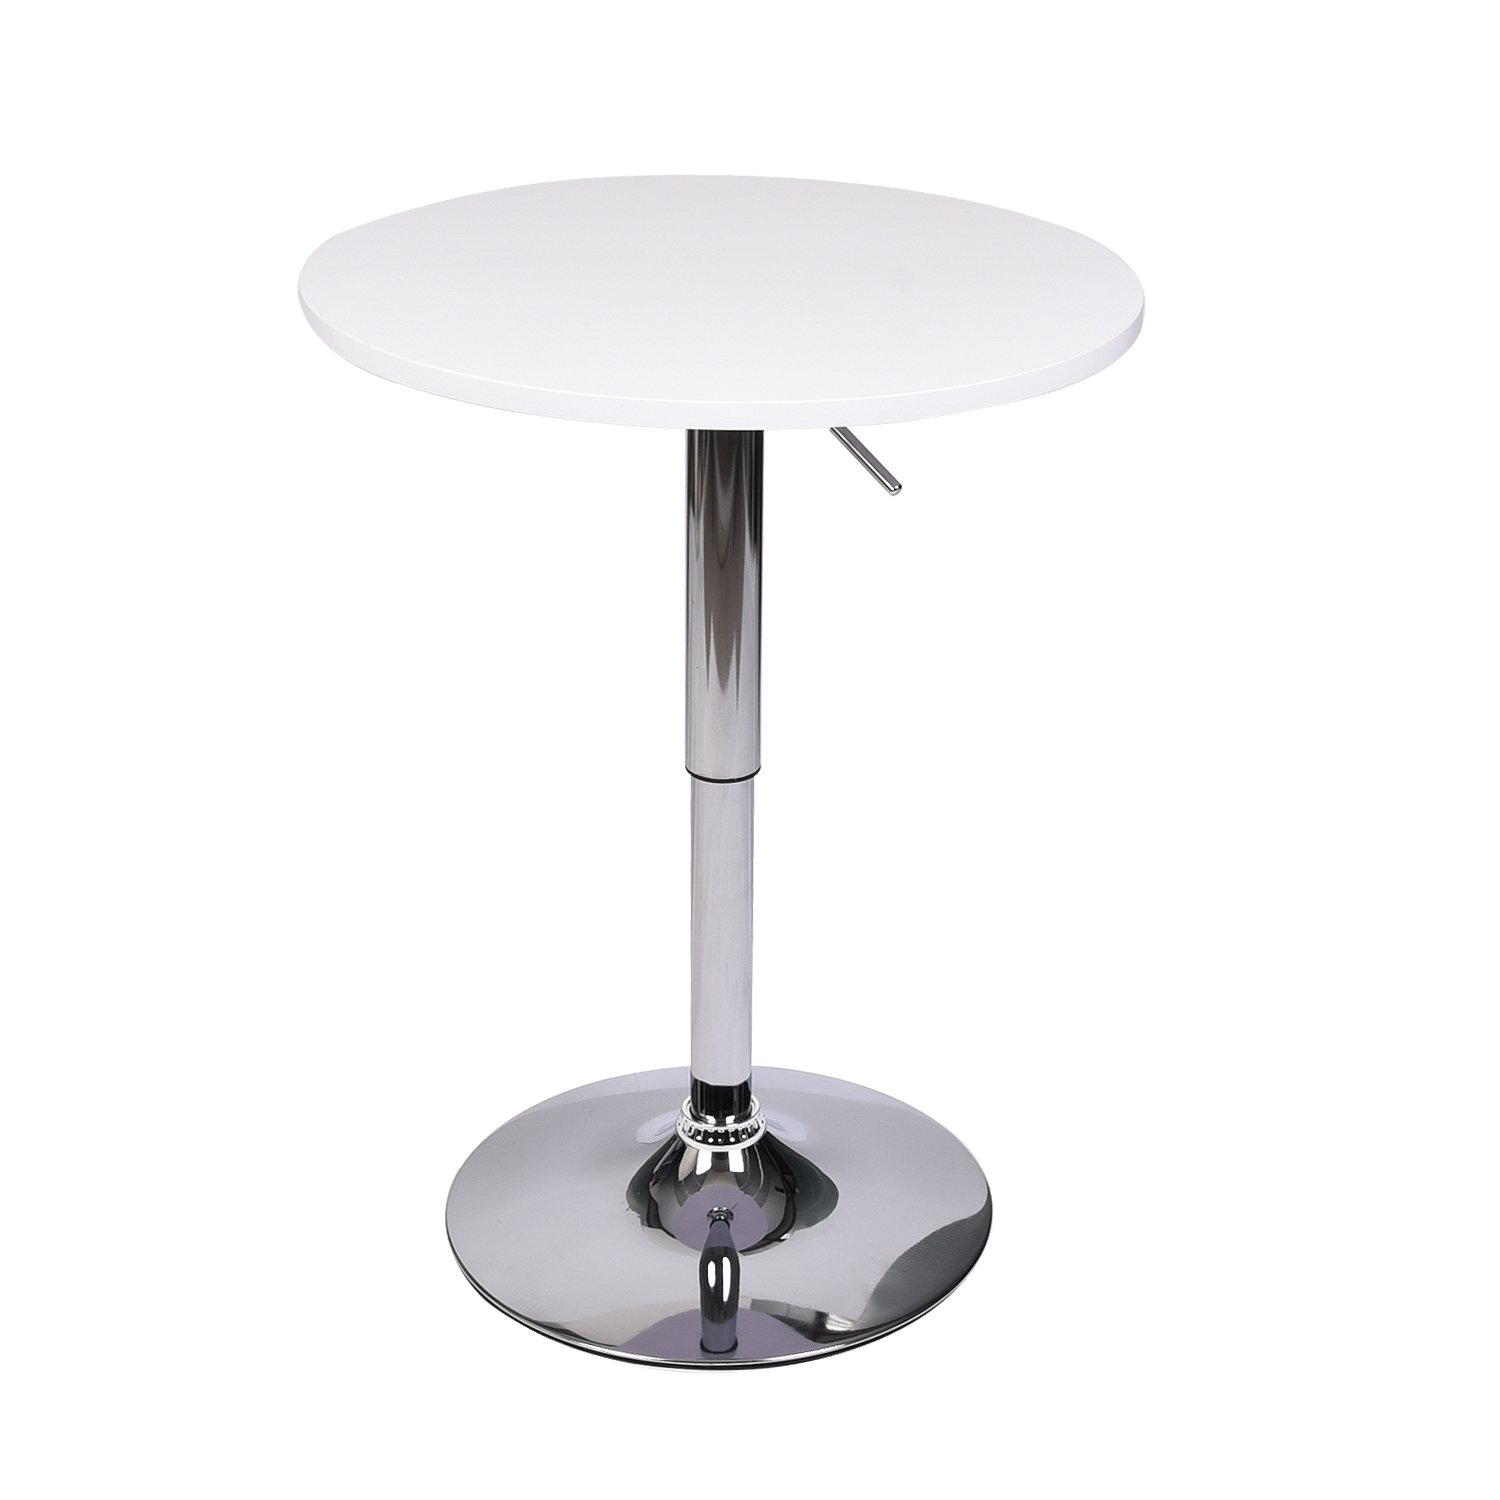 35 Inches Round Bar Table Adjustable Height Chrome Metal and Wood Cocktail Pub Table MDF Top 360°Swivel Furniture (White 1)